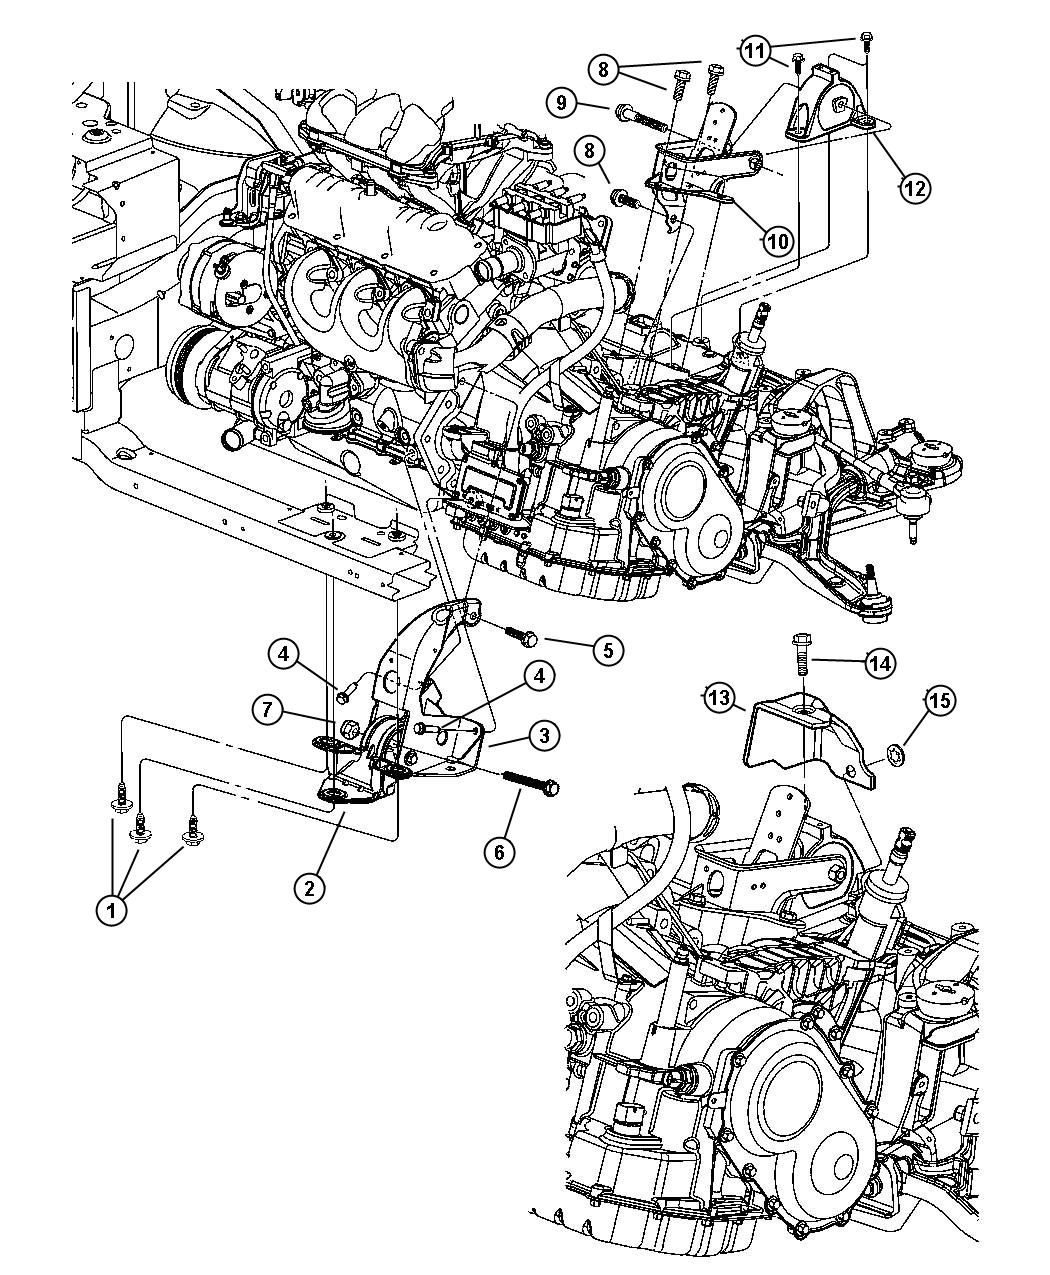 2005 Chrysler Town And Country Cooling System Diagram